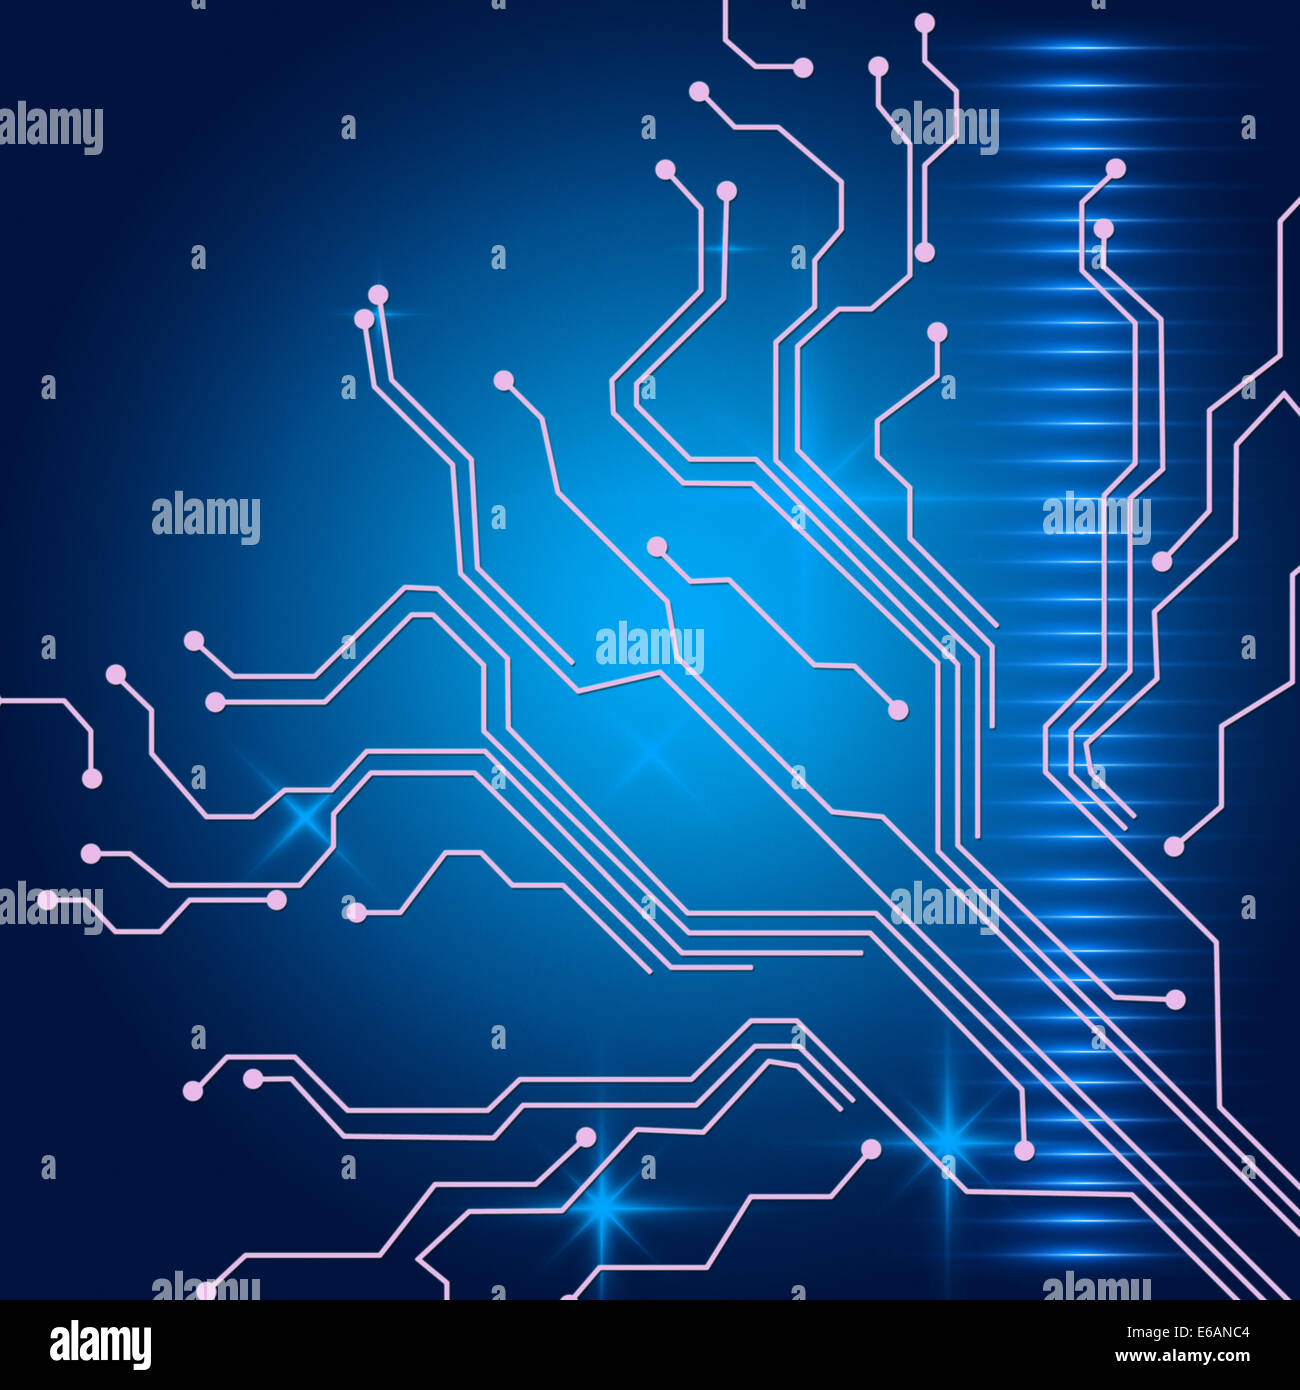 Contact Links Background Showing Electric Circuit Or Interface Wire ...